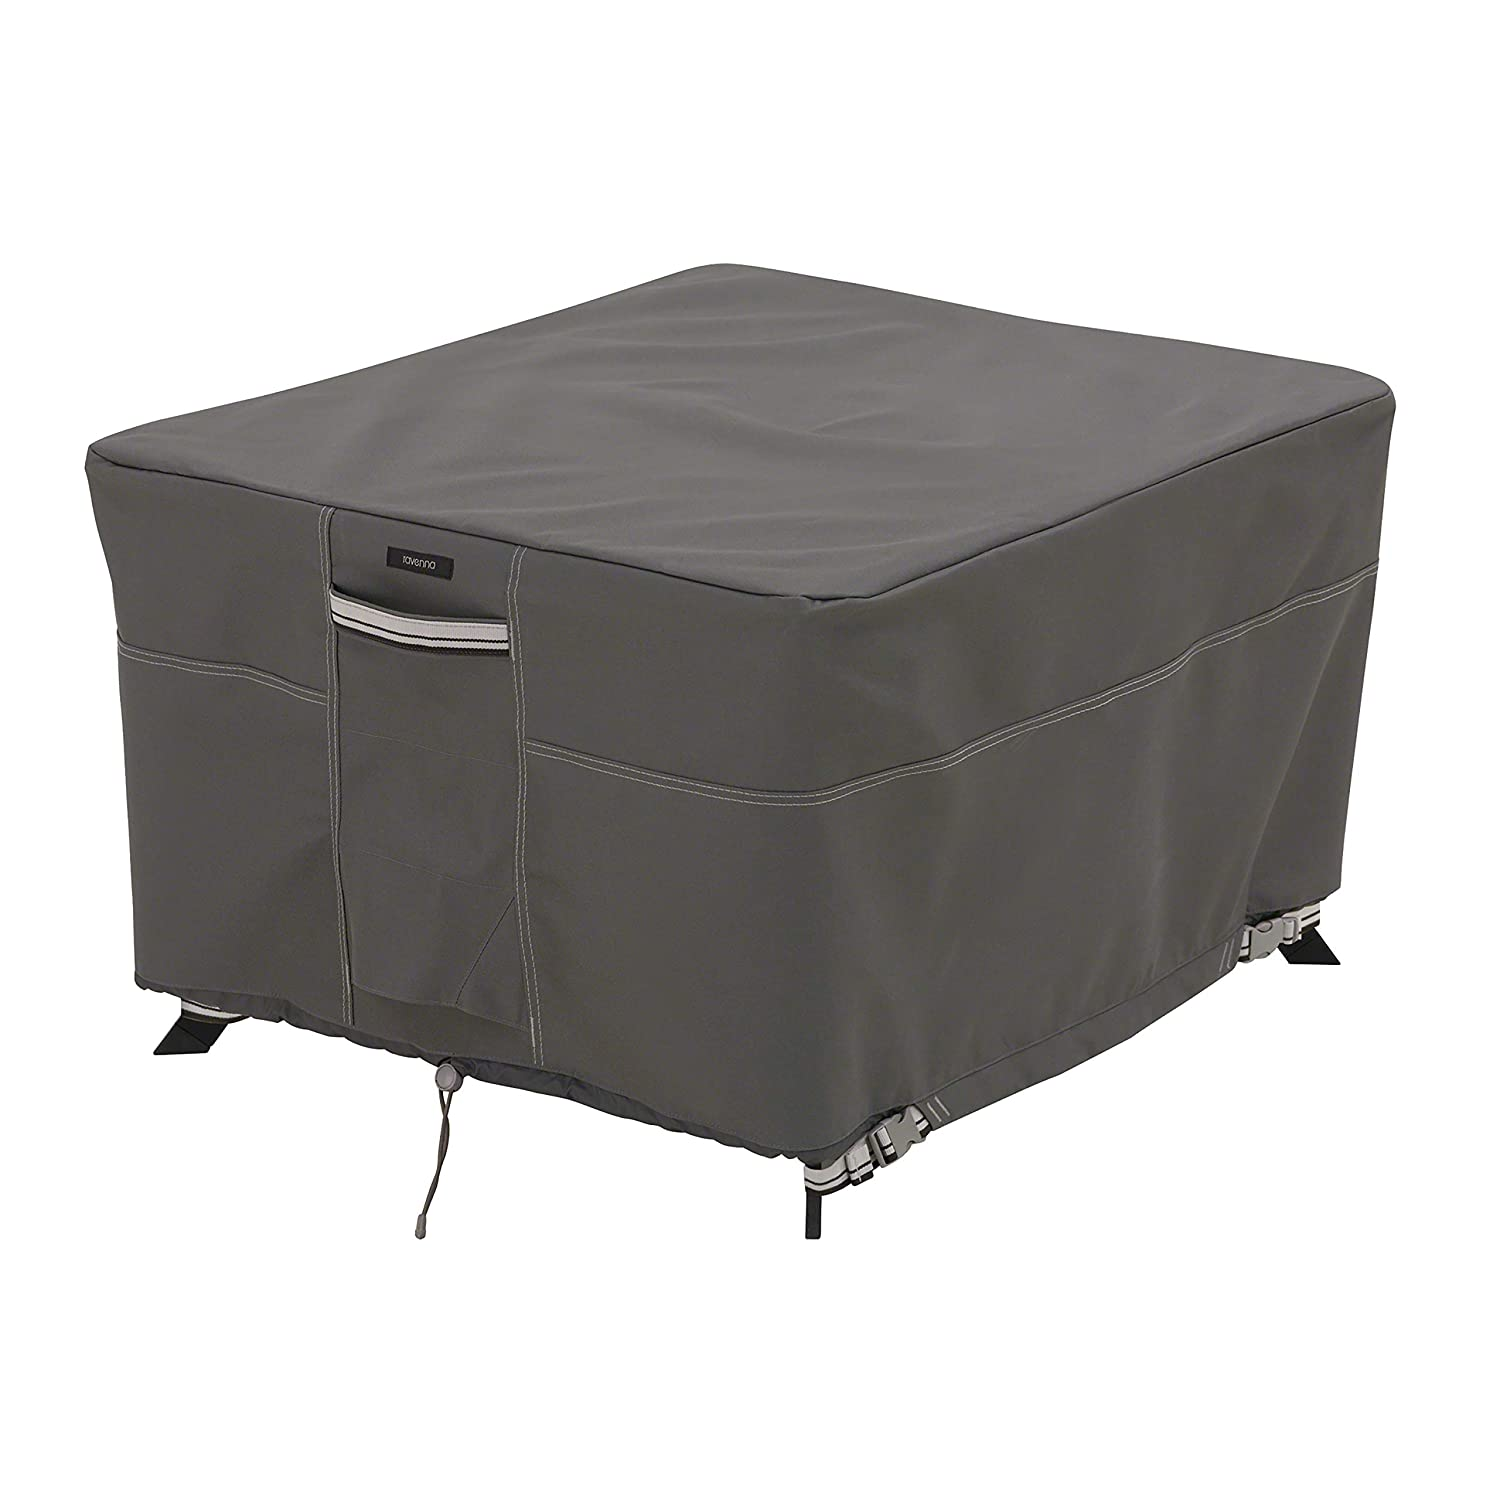 """Classic Accessories 56-045-045101-EC Ravenna Square Patio Table Cover, Large, Fits 60"""" L x 60"""" W x 23"""" H, Taupe"""